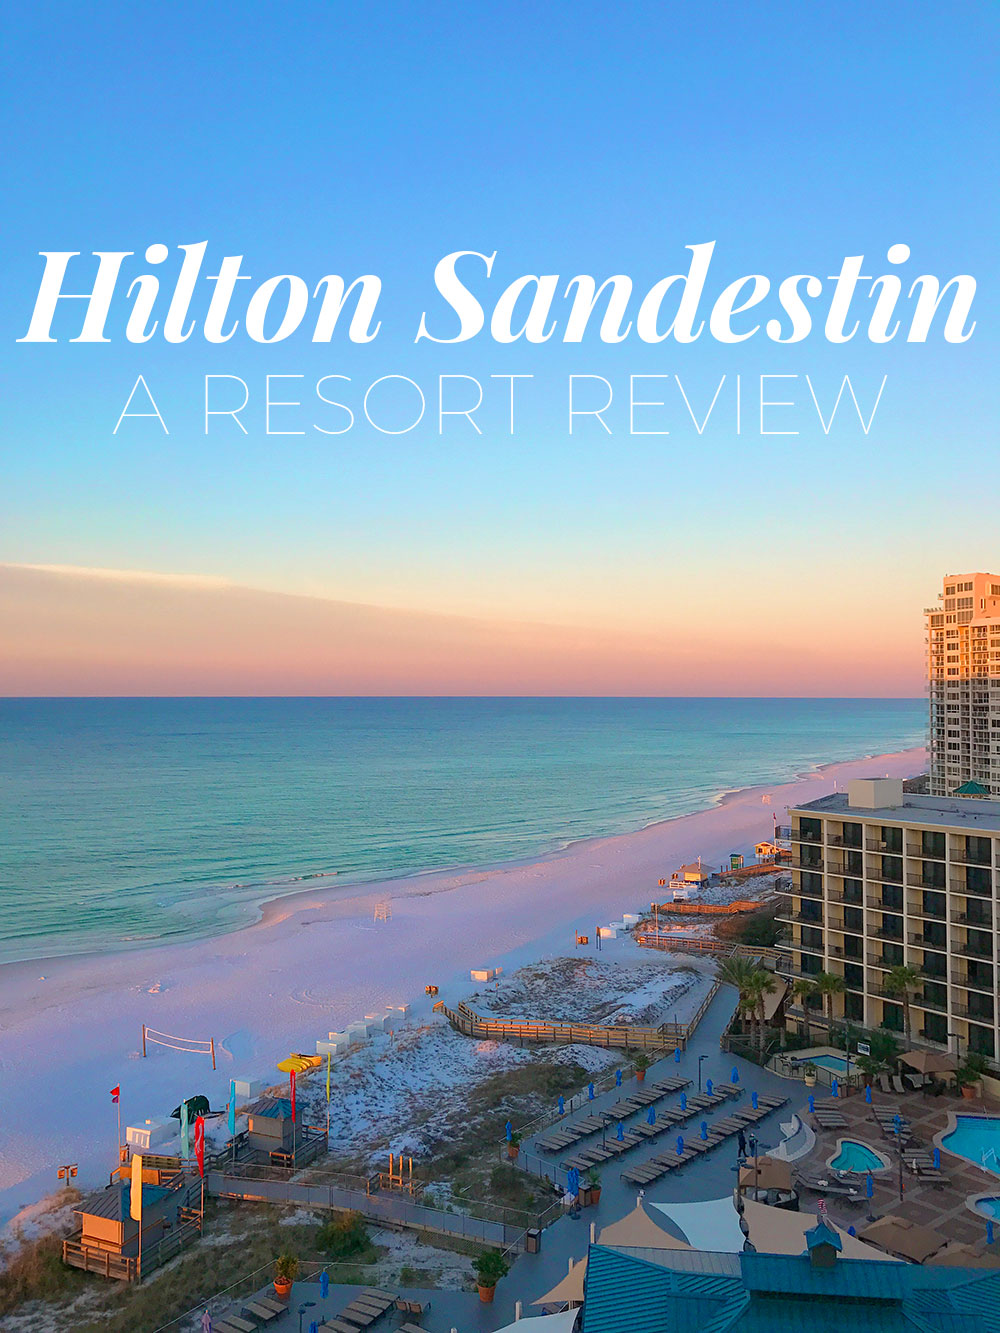 Girl S Trip To The Hilton Sandestin Resort Vandi Fair,How To Cook A Fully Cooked Ham